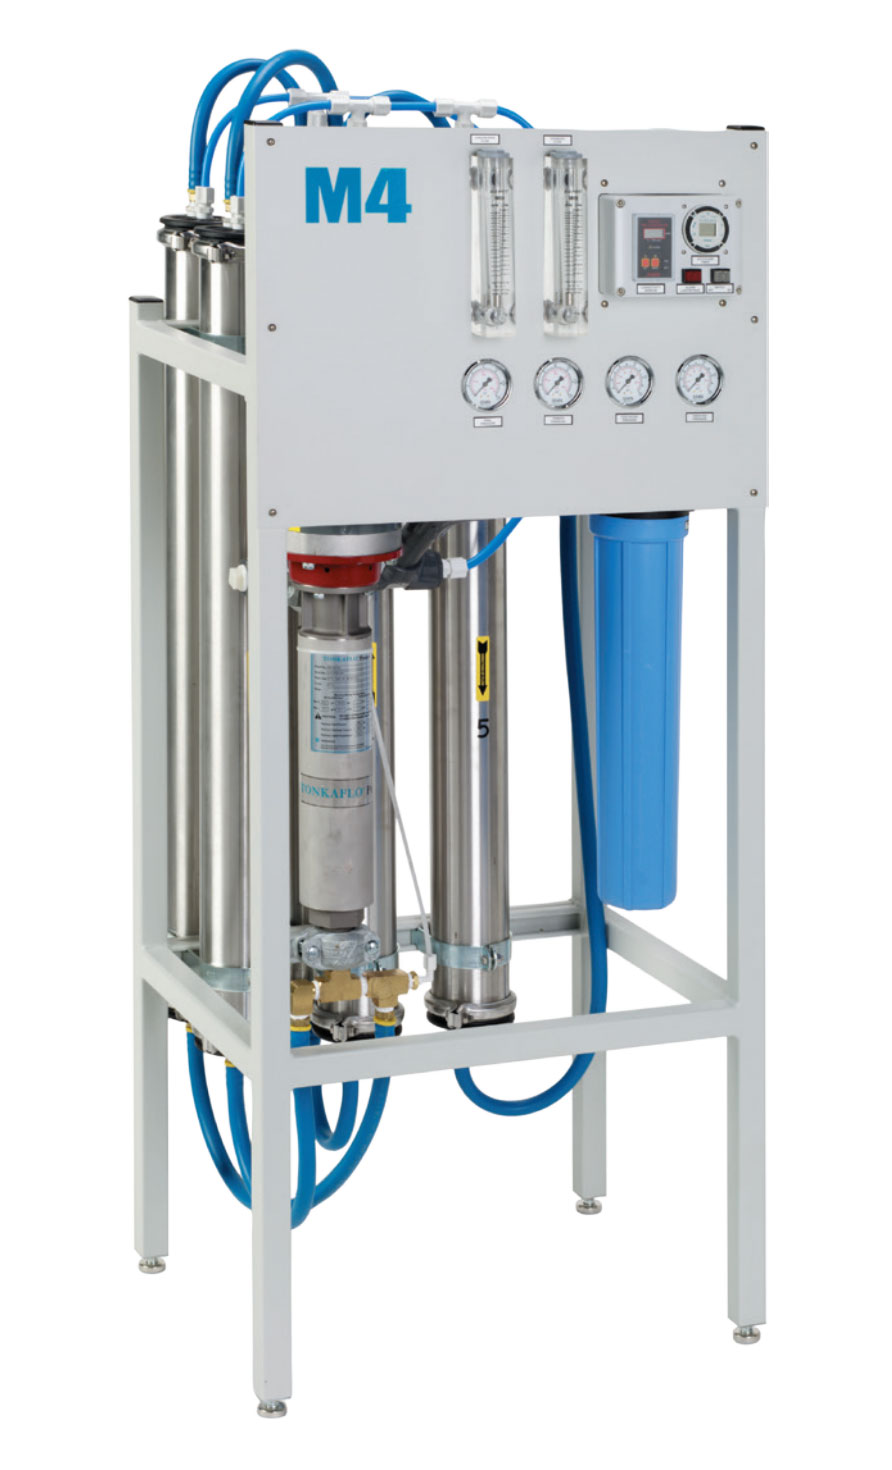 Central-Dialysis-System---M4-Dialysis